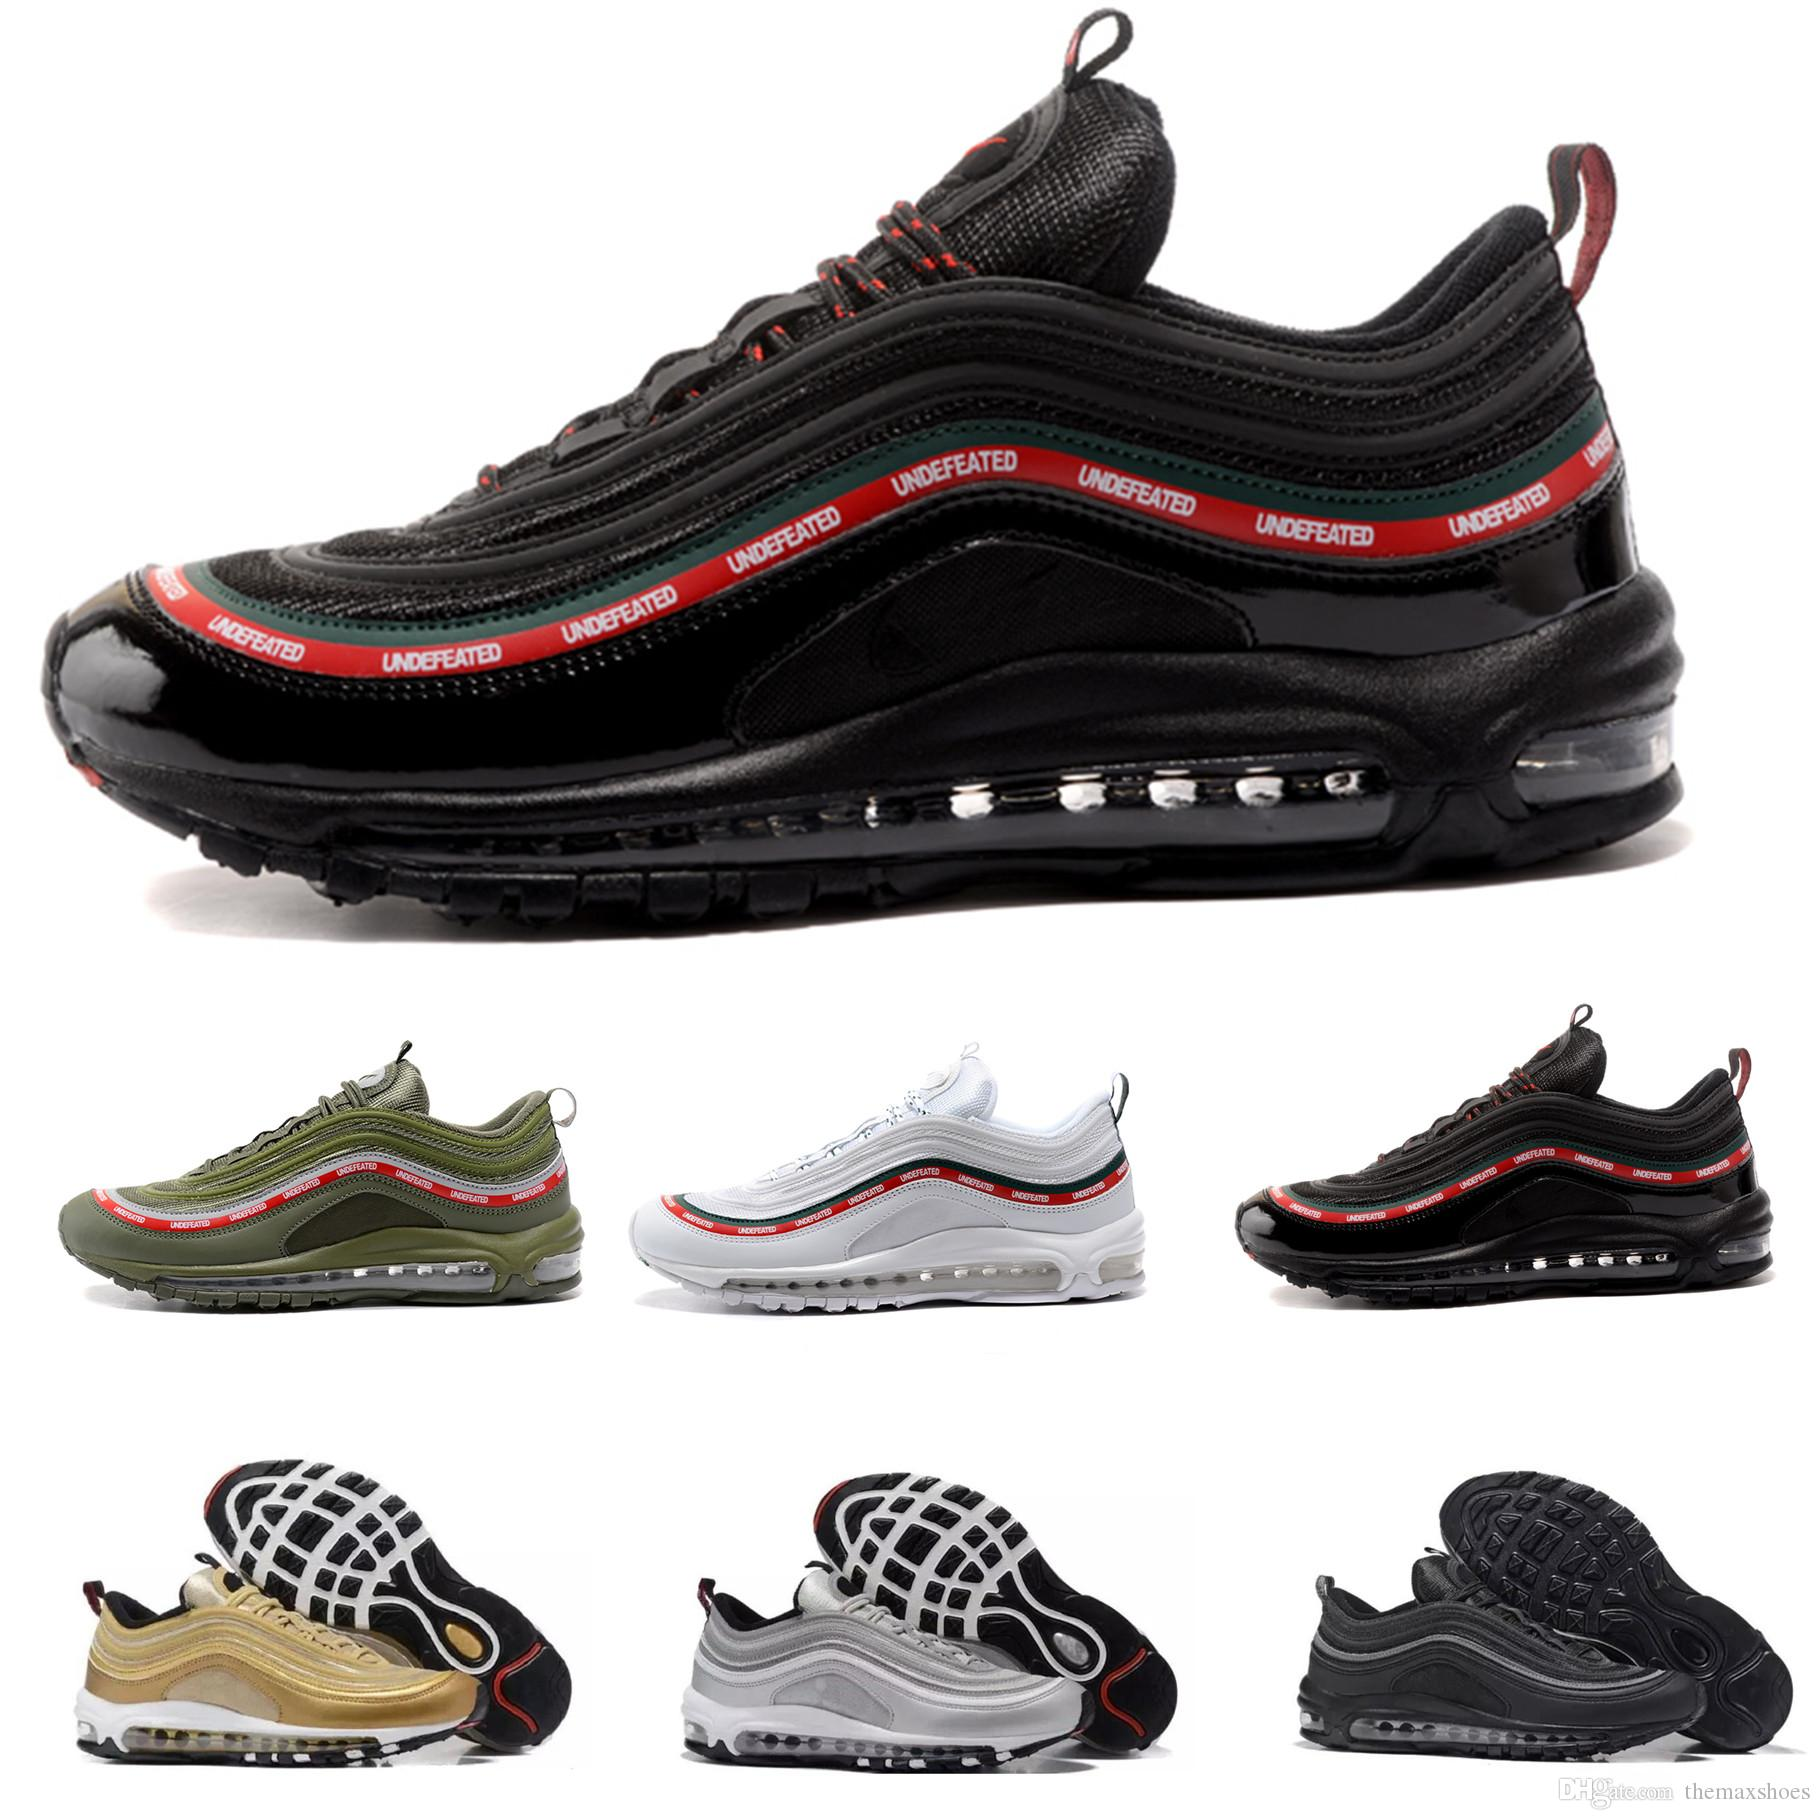 sale real sale websites New 97 OG Undefeated white Undefeated black womens Running Shoes Metallic gold Lightweight Athletic Sports Training Sneakers designer cost sale online 2015 new online sale free shipping QHNQWia